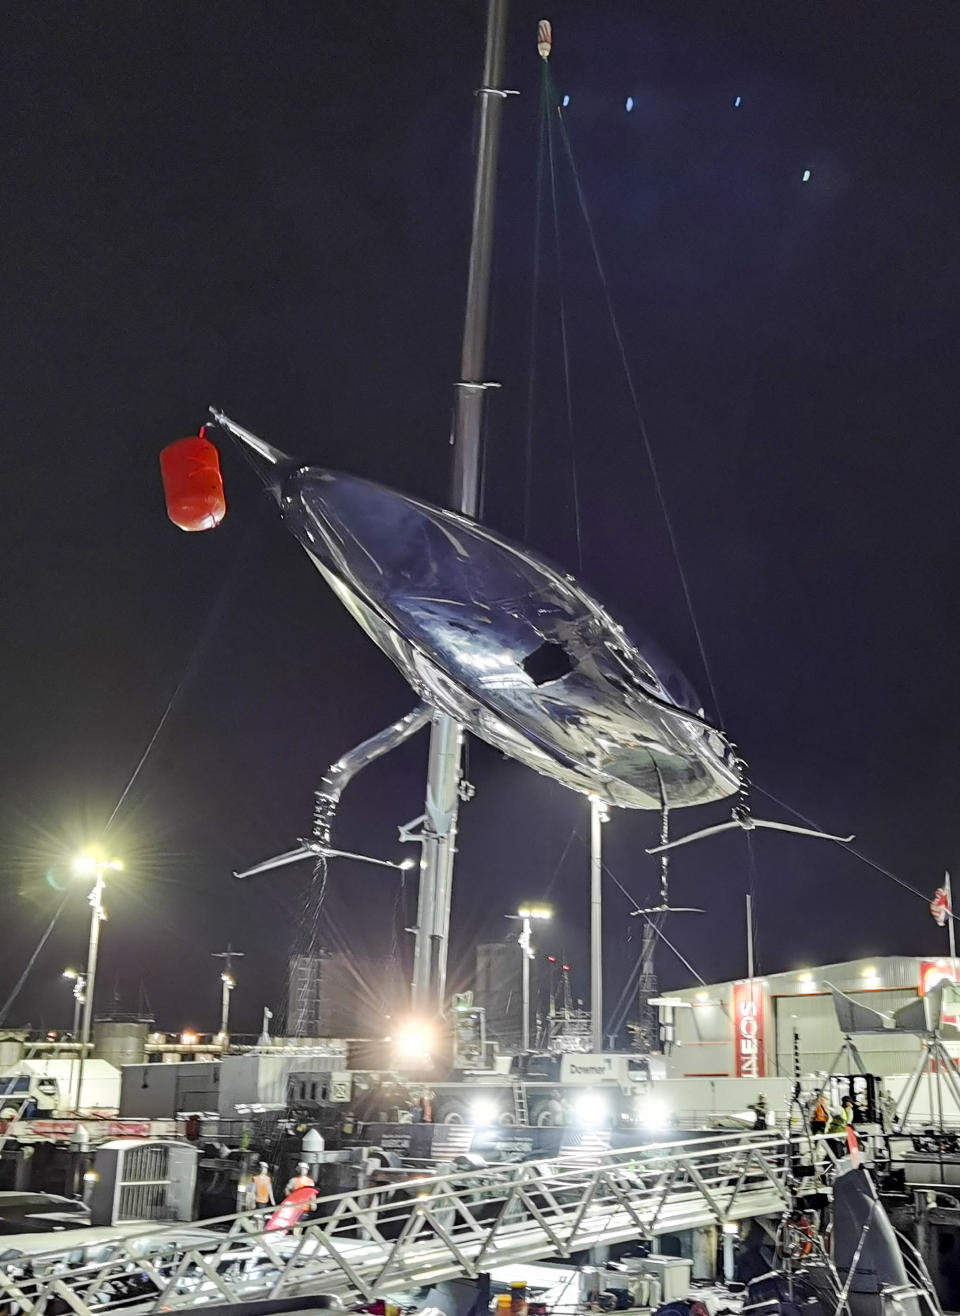 United States' American Magic's damaged boat, Patriot is lifted out of the water at its team base after it capsized during its race against Italy's Luna Rossa on the third day of racing of the America's Cup challenger series on Auckland's Waitemate Harbour, New Zealand, Sunday, Jan. 17, 2021. (Will Trafford/NZ Herald via AP)